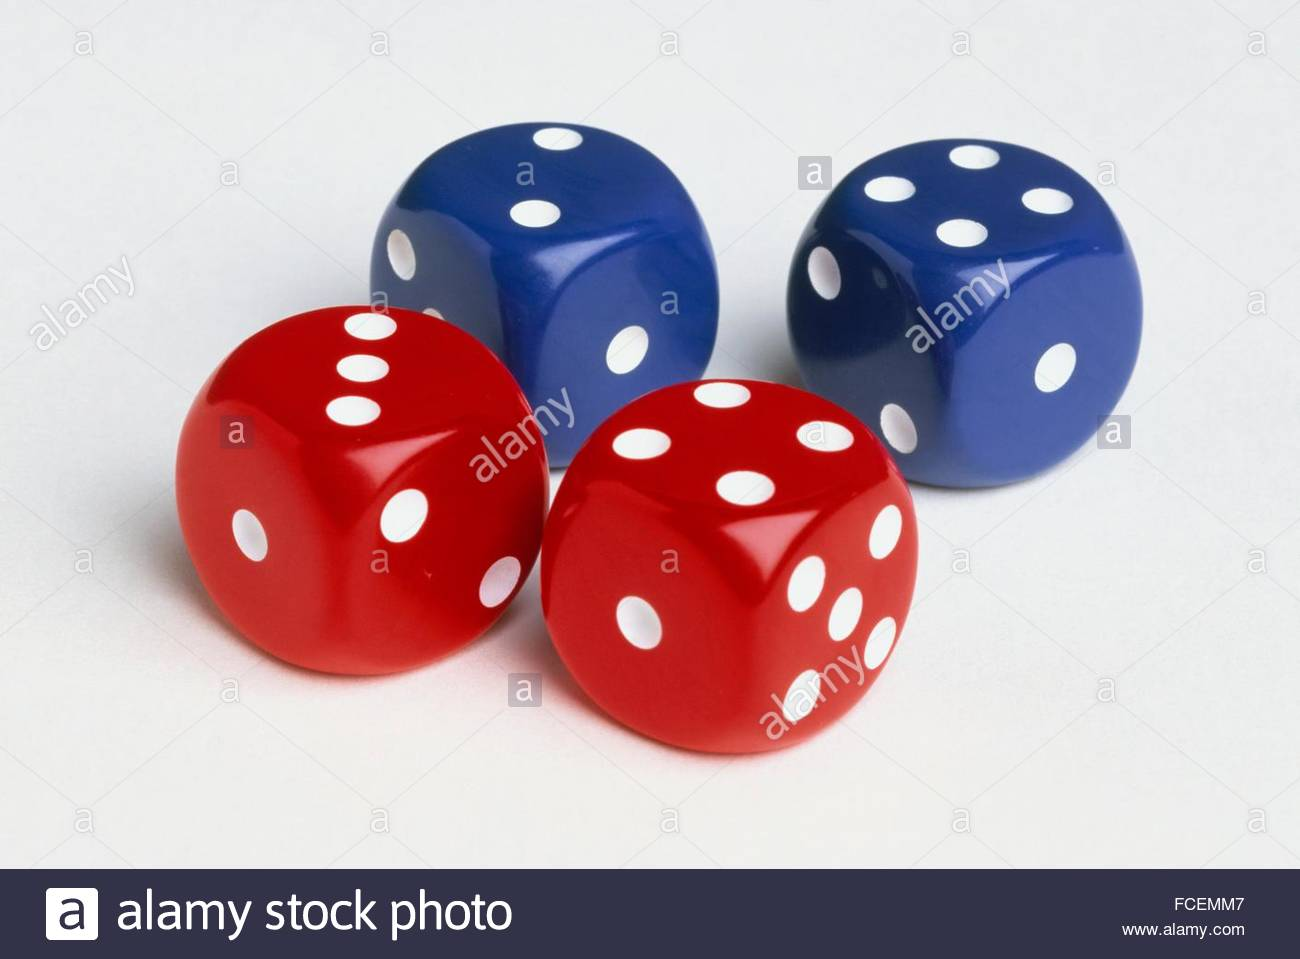 Four red and blue dice - Stock Image